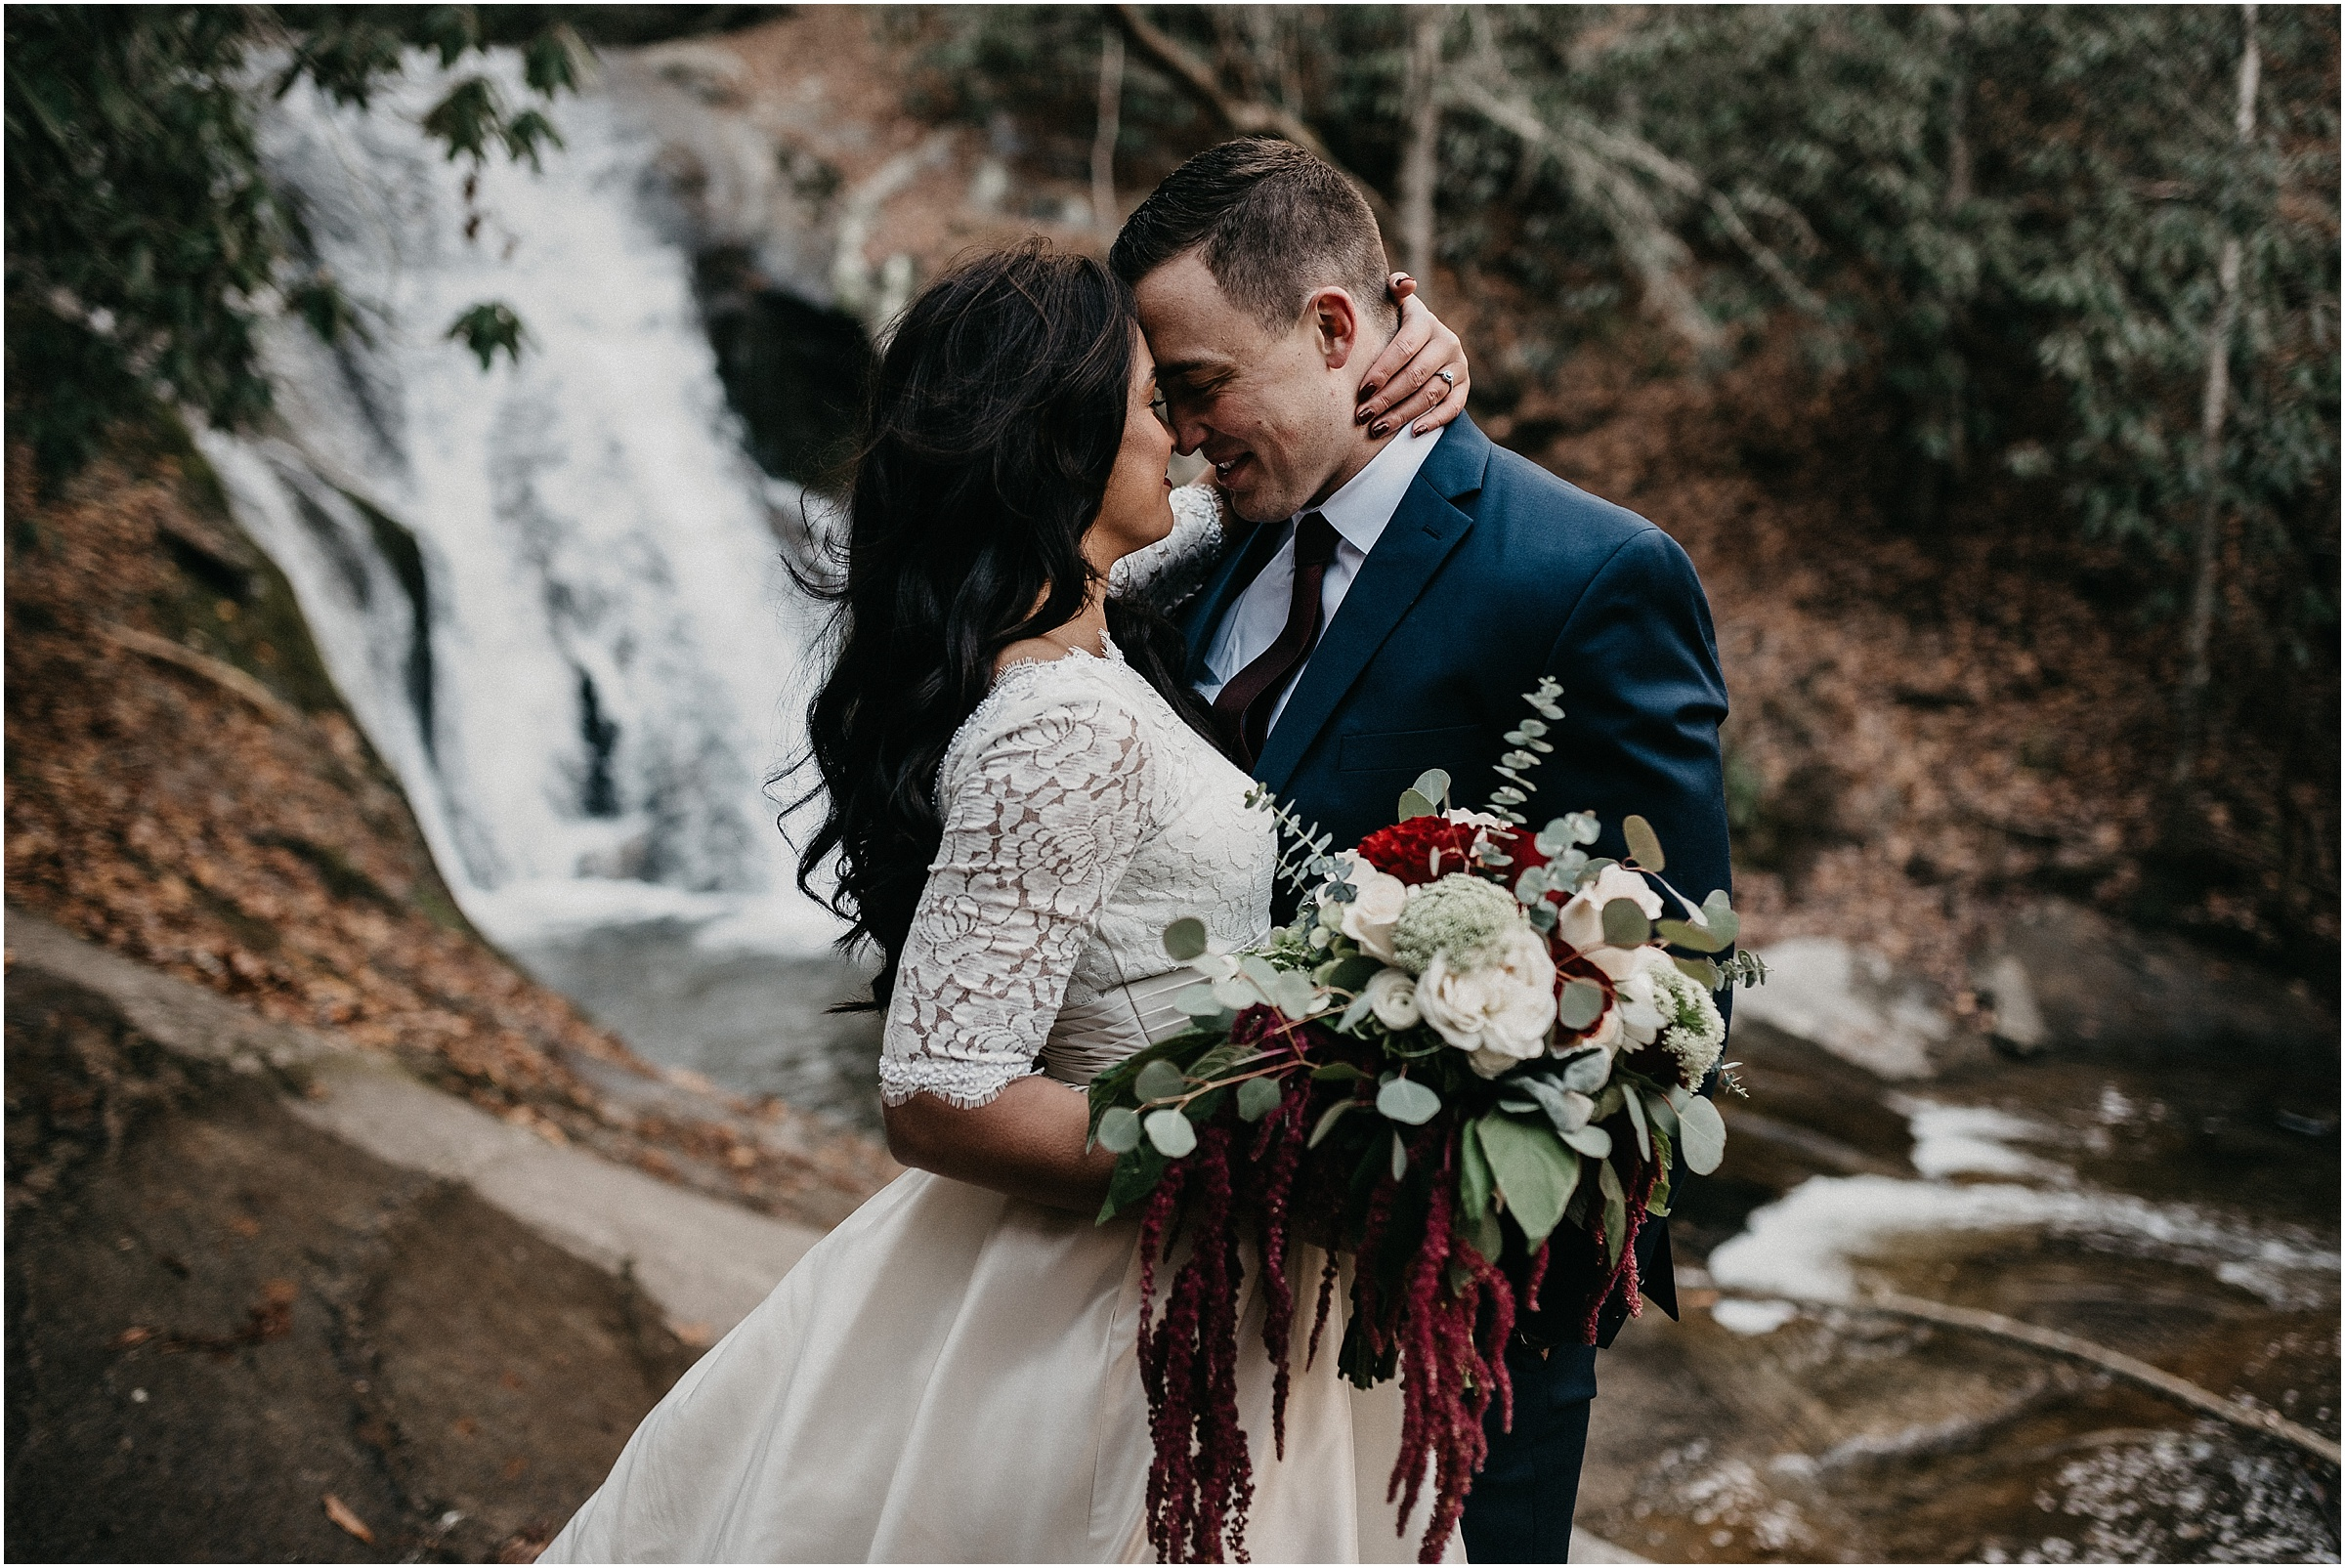 Stone_Mountain_NC_Elopement_24.JPG